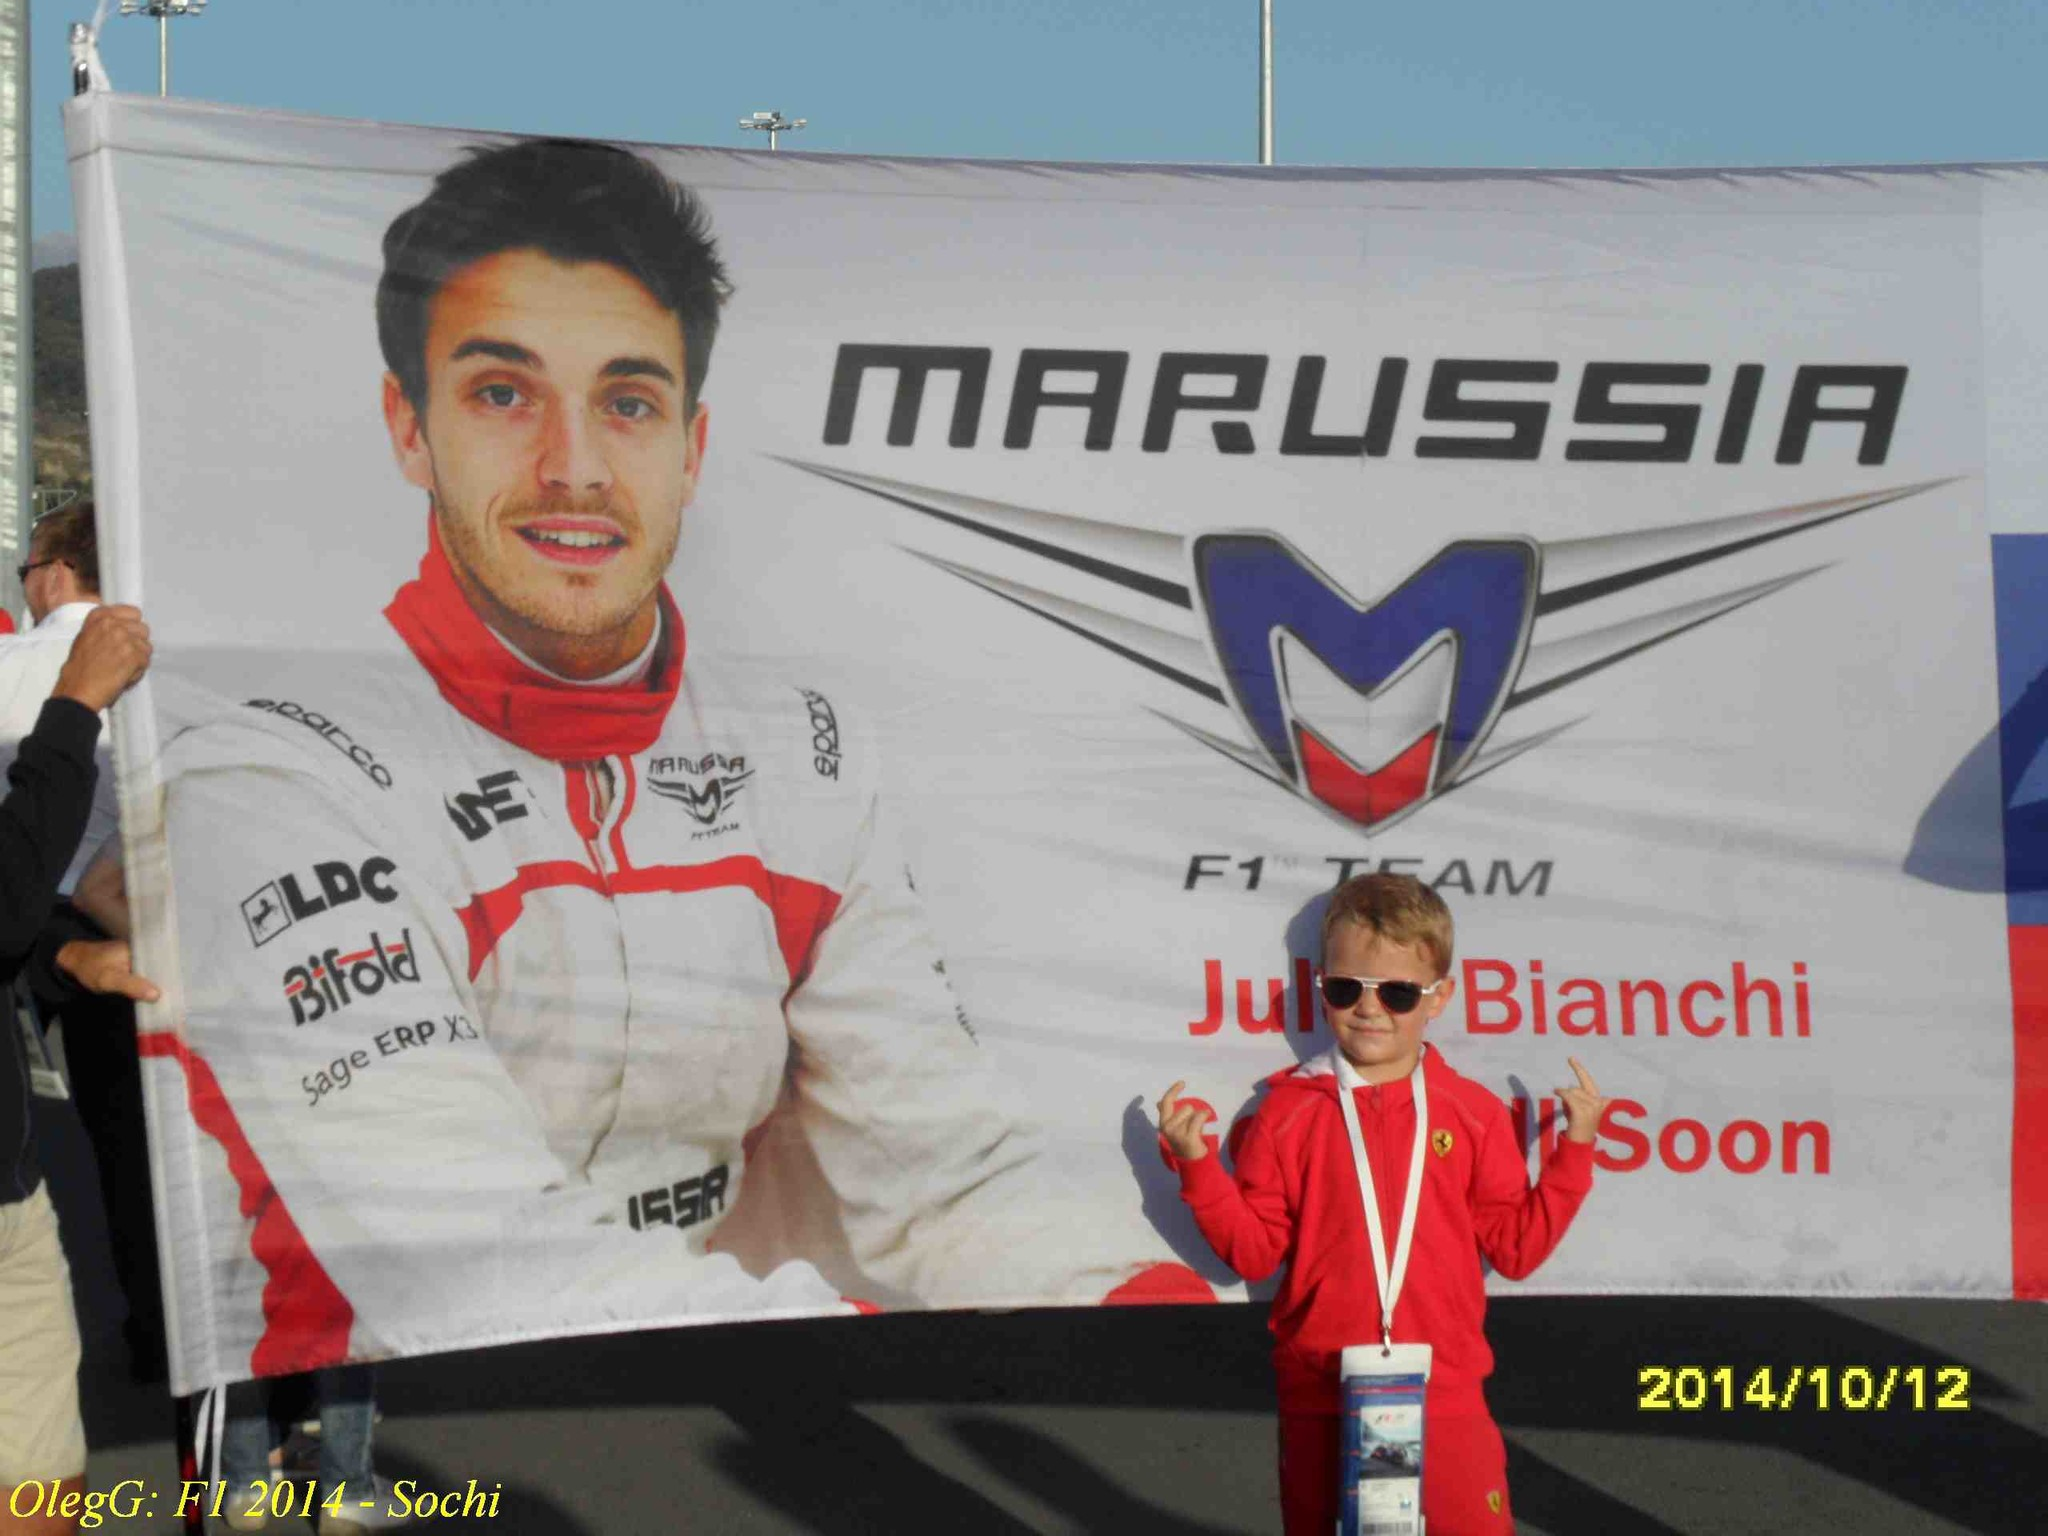 Support to Bianchi on the Sochi